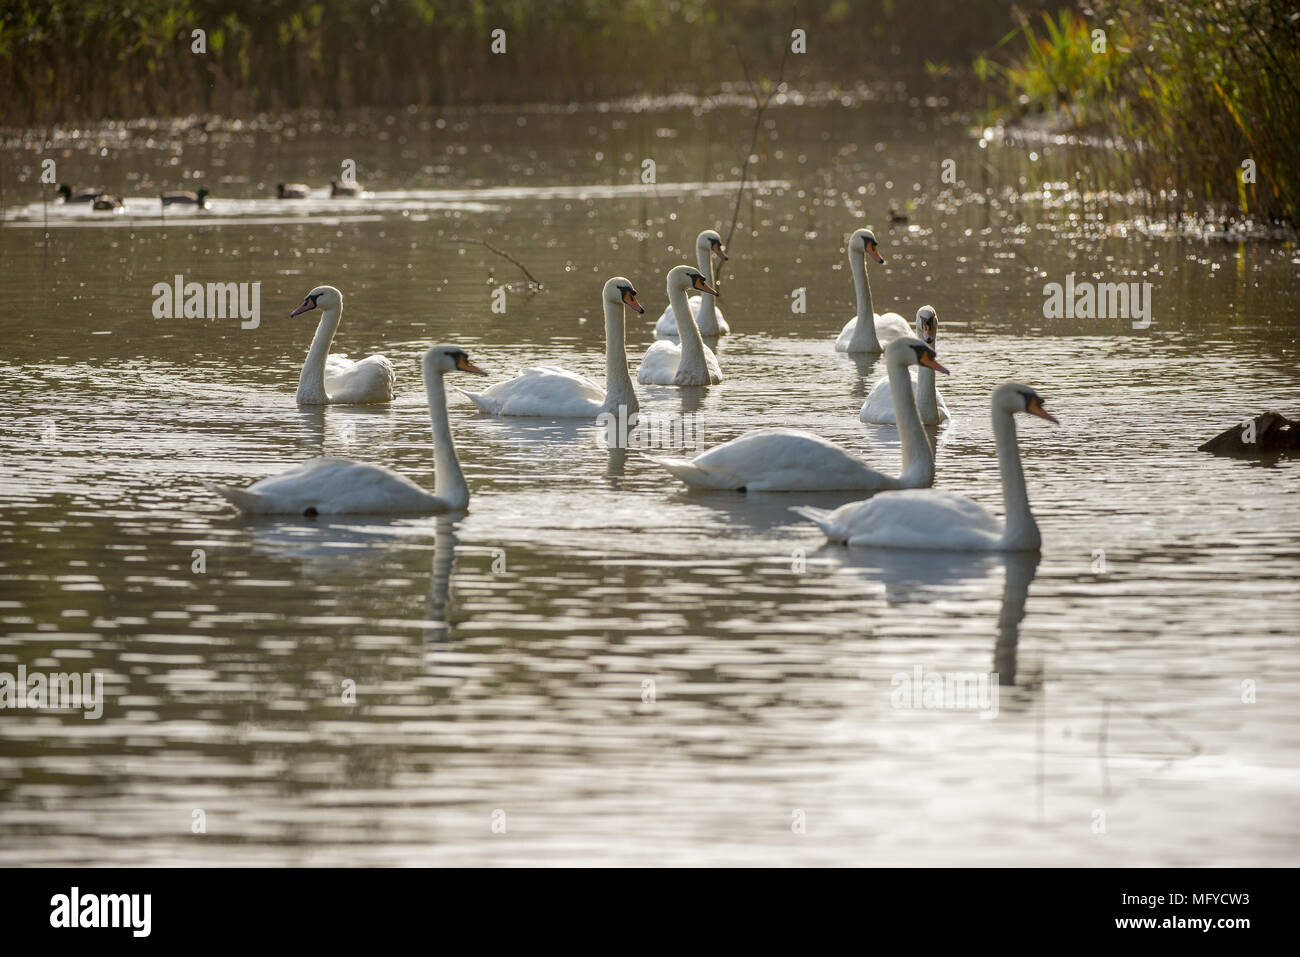 Swans swimming on a lake with evening Autumn light and still water - Stock Image